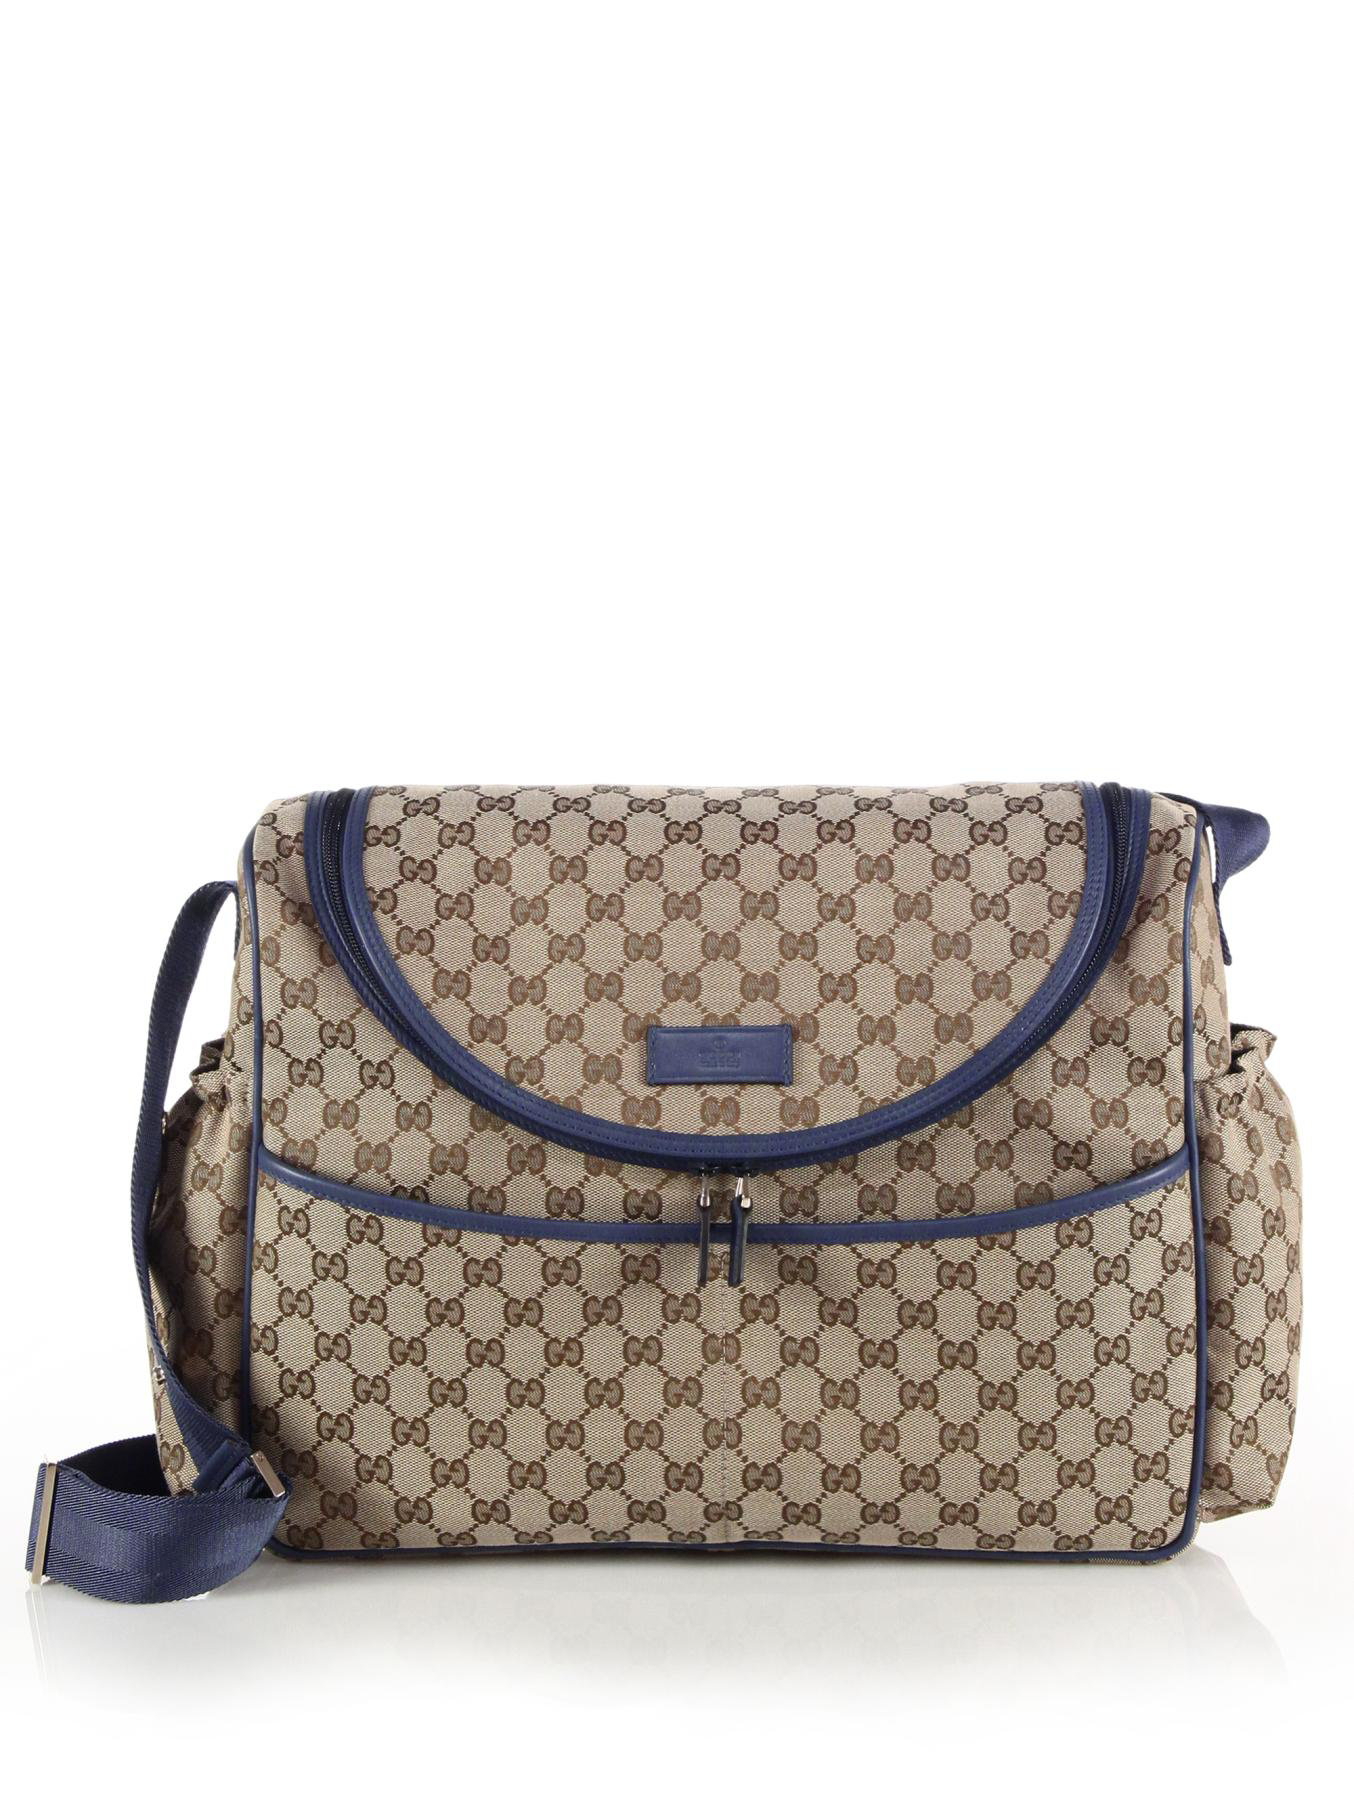 1f24d6a48f56c1 Baby Blue Gucci Diaper Bag | Stanford Center for Opportunity Policy ...